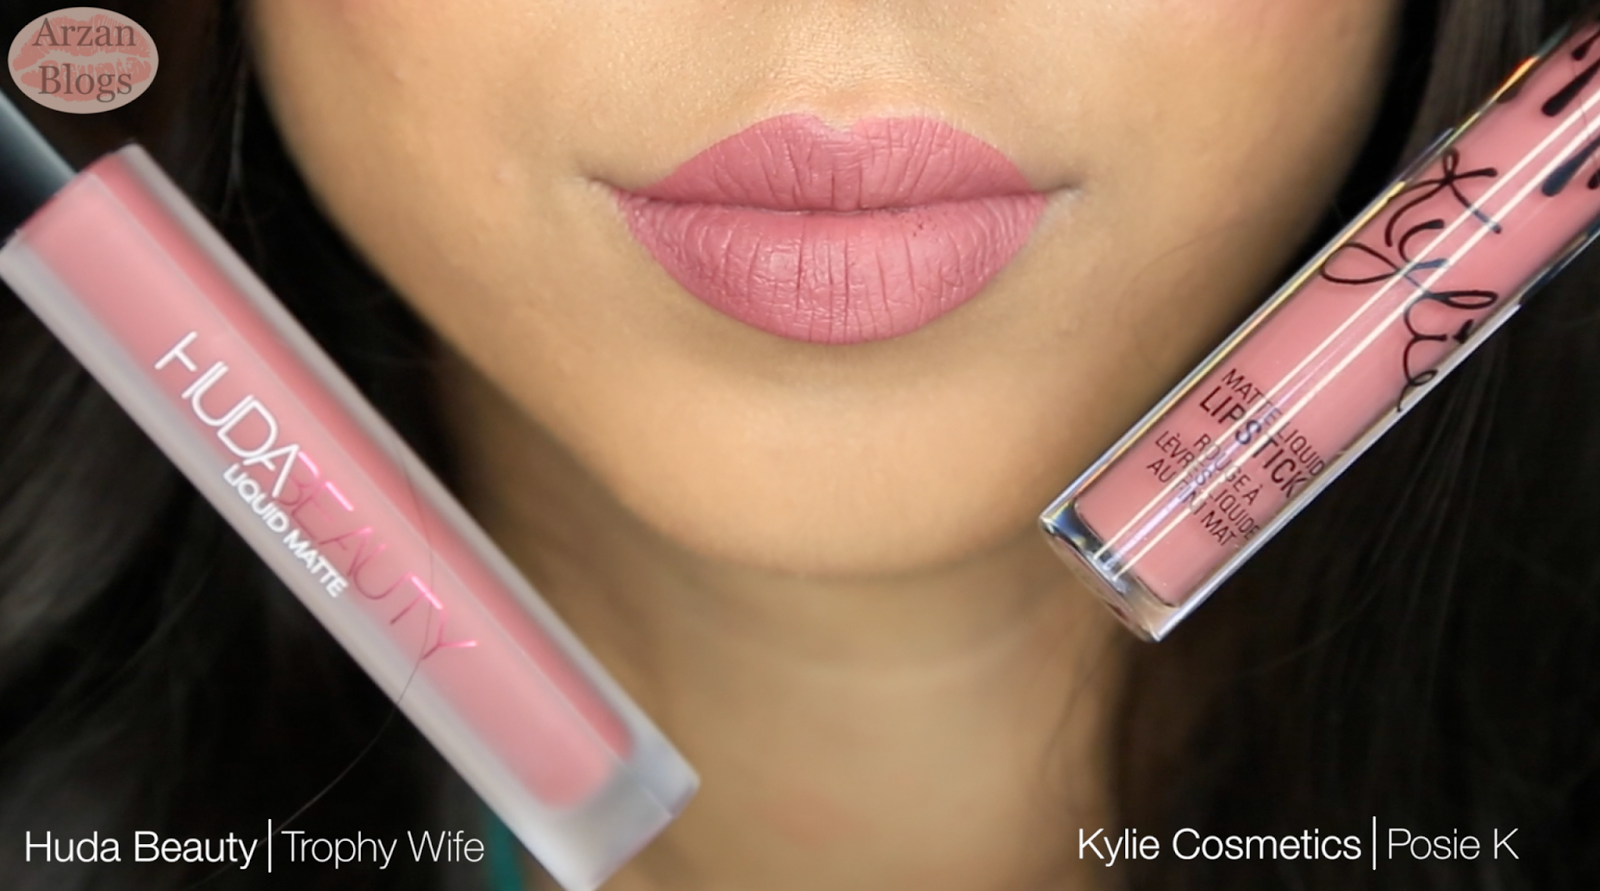 Beauty Kylie Lipstick Vs Huda Lipsticks Cosmetics Candy K Both Of These Shades Appear Similar On The Lips Except Posie Is A Bit Lighter Than Trophy Wife